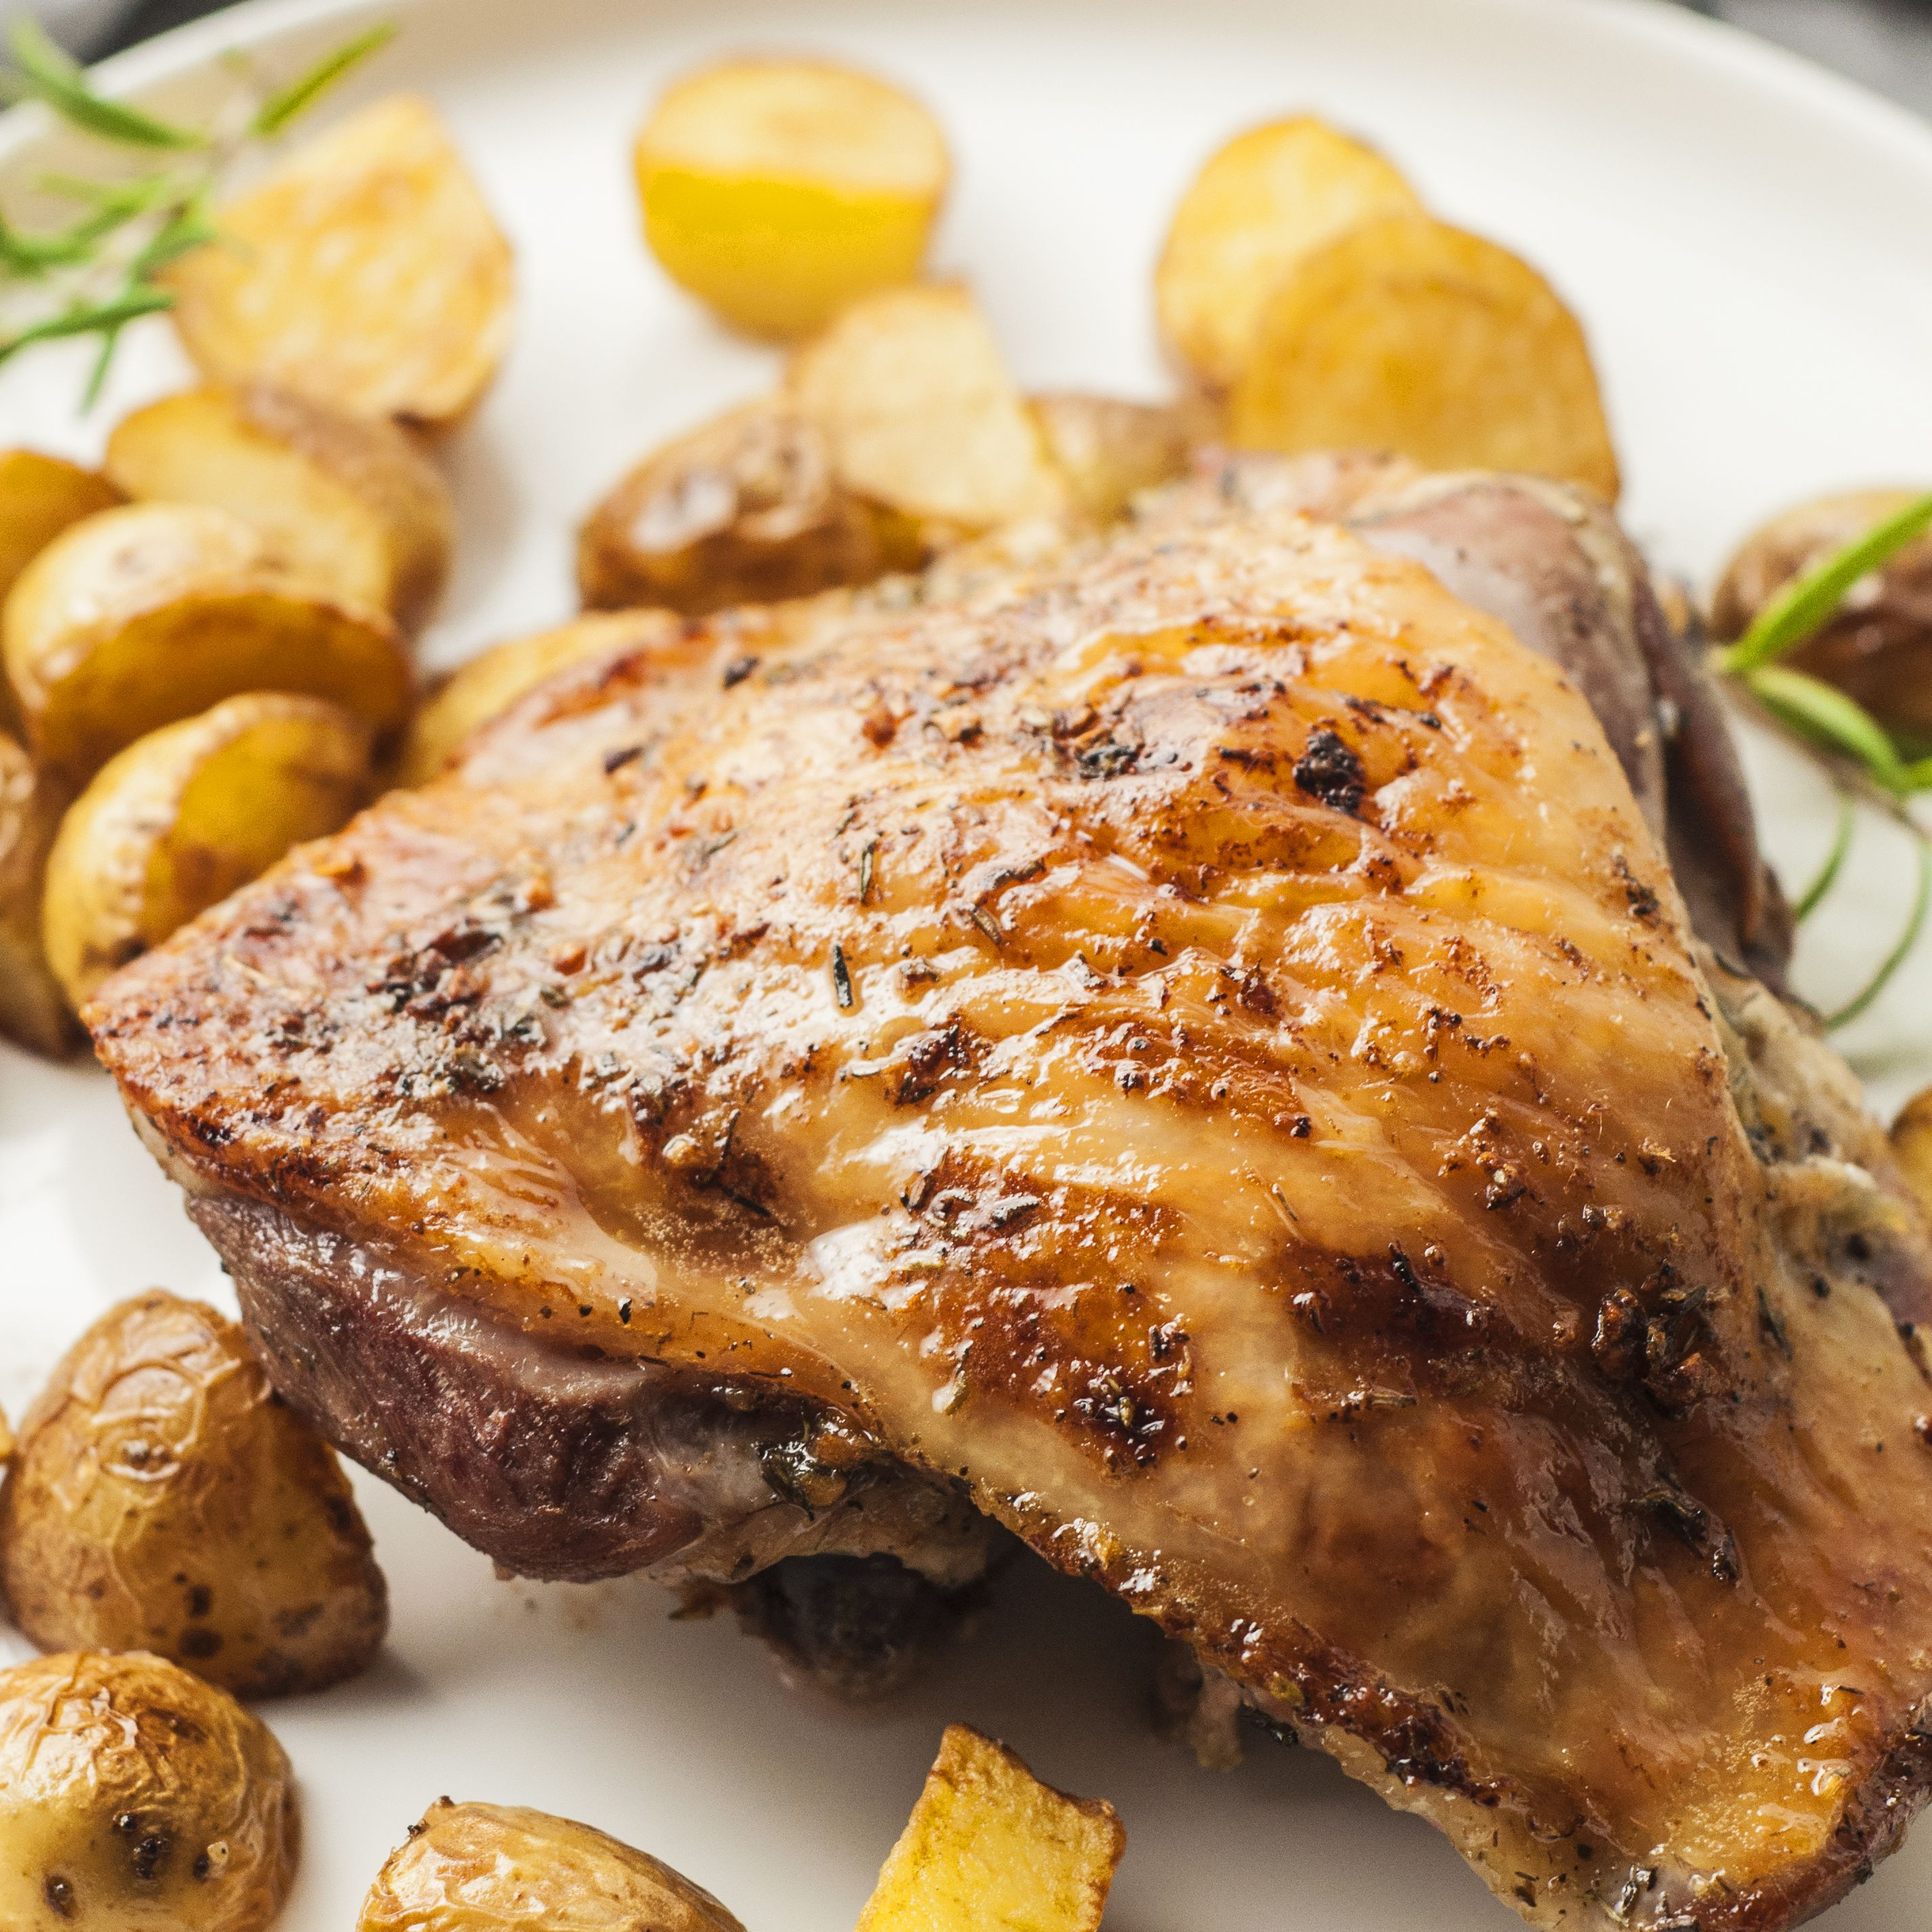 Roasted turkey thighs served with baby potatoes